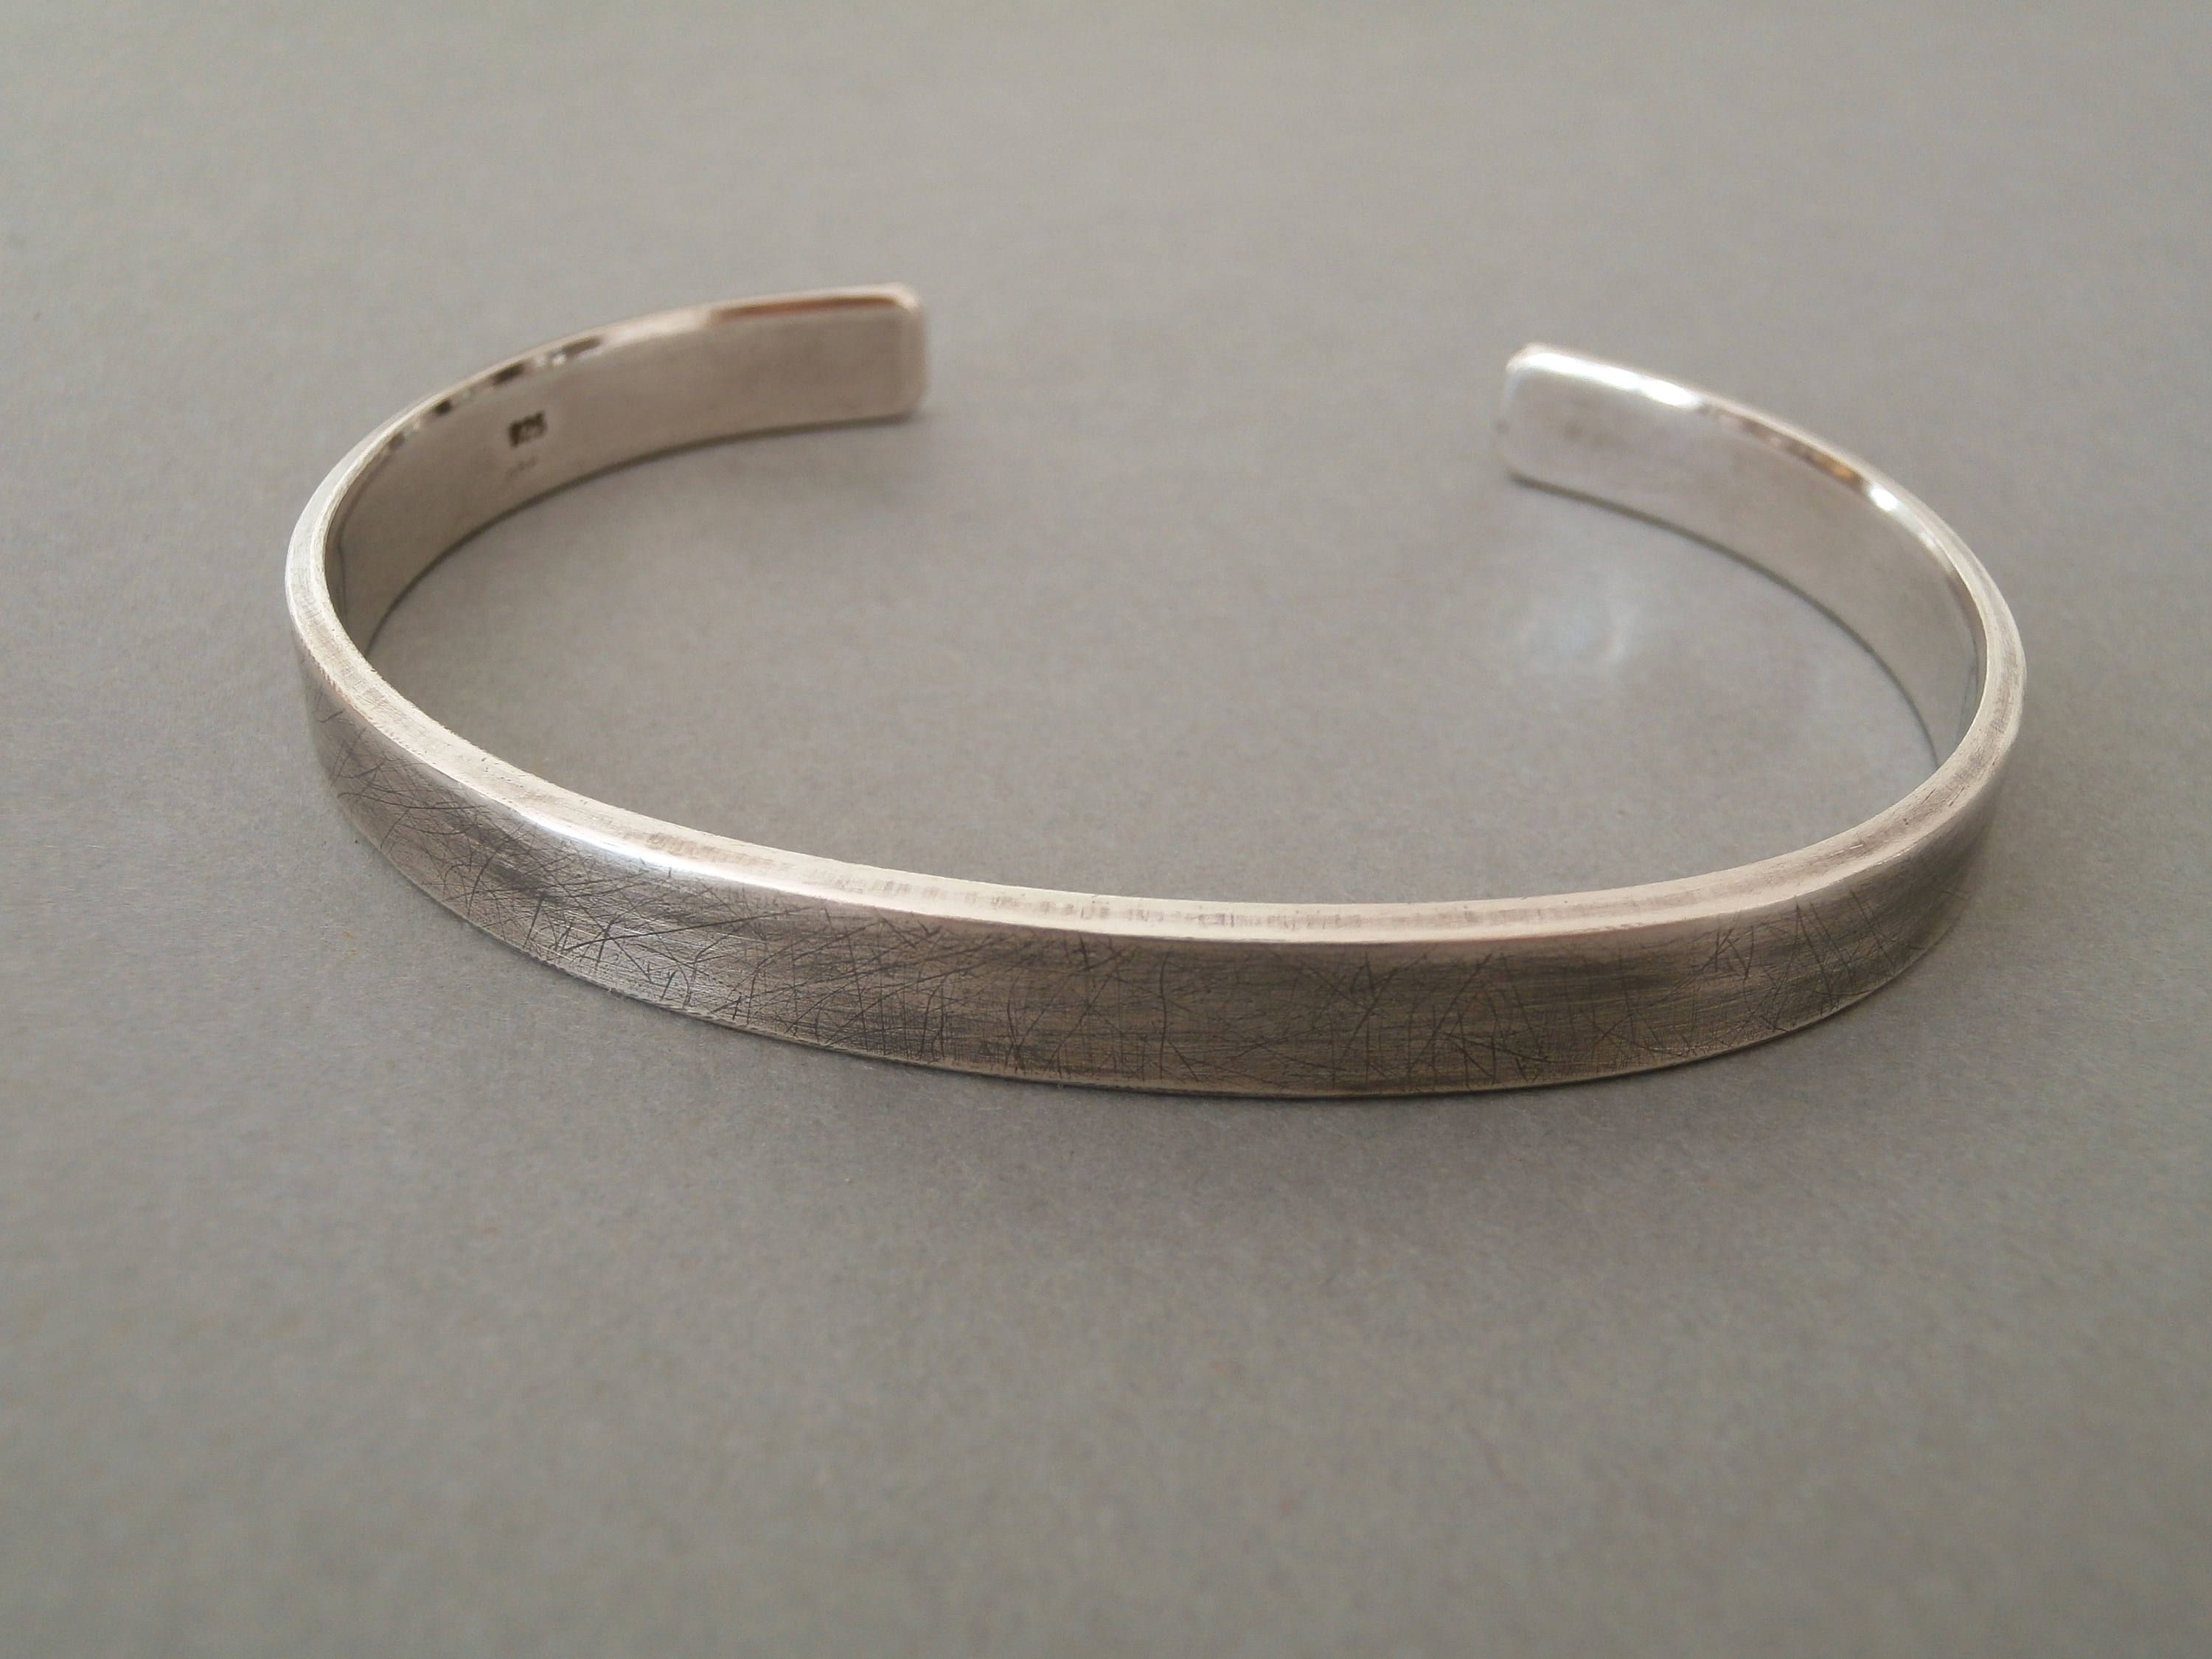 br bangle west sterling il vintage bracelet bangles fullxfull design p plain bracelets silver indian